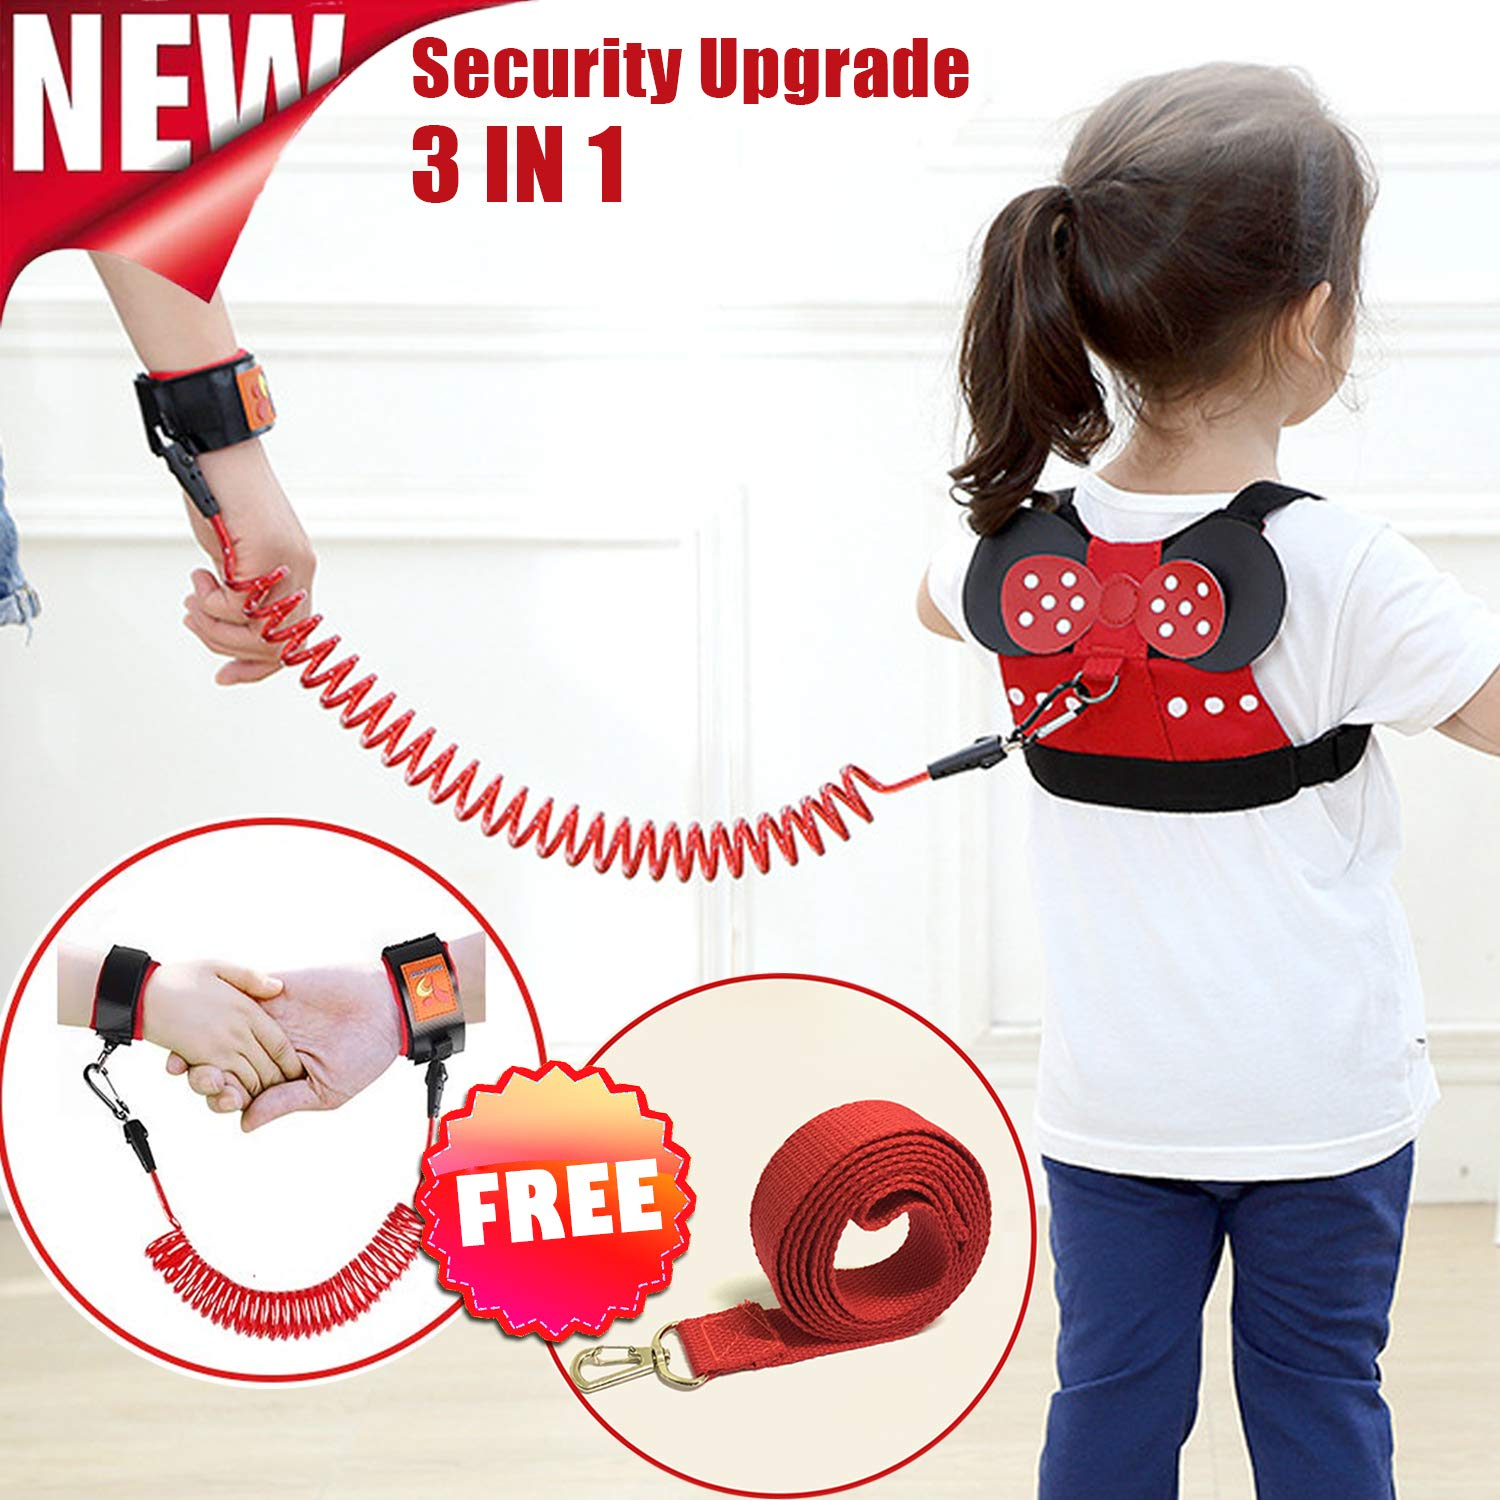 Kids Harness,Toddler Safety Harness Leashes Anti-Lost Belt Safety Walking Leash for Age 1-8 Year Old Boy Girl, Safety Anti Lost Wrist Link for Toddlers Babies to Outdoor,Zoo,Mall,Hiking,Amusement Park